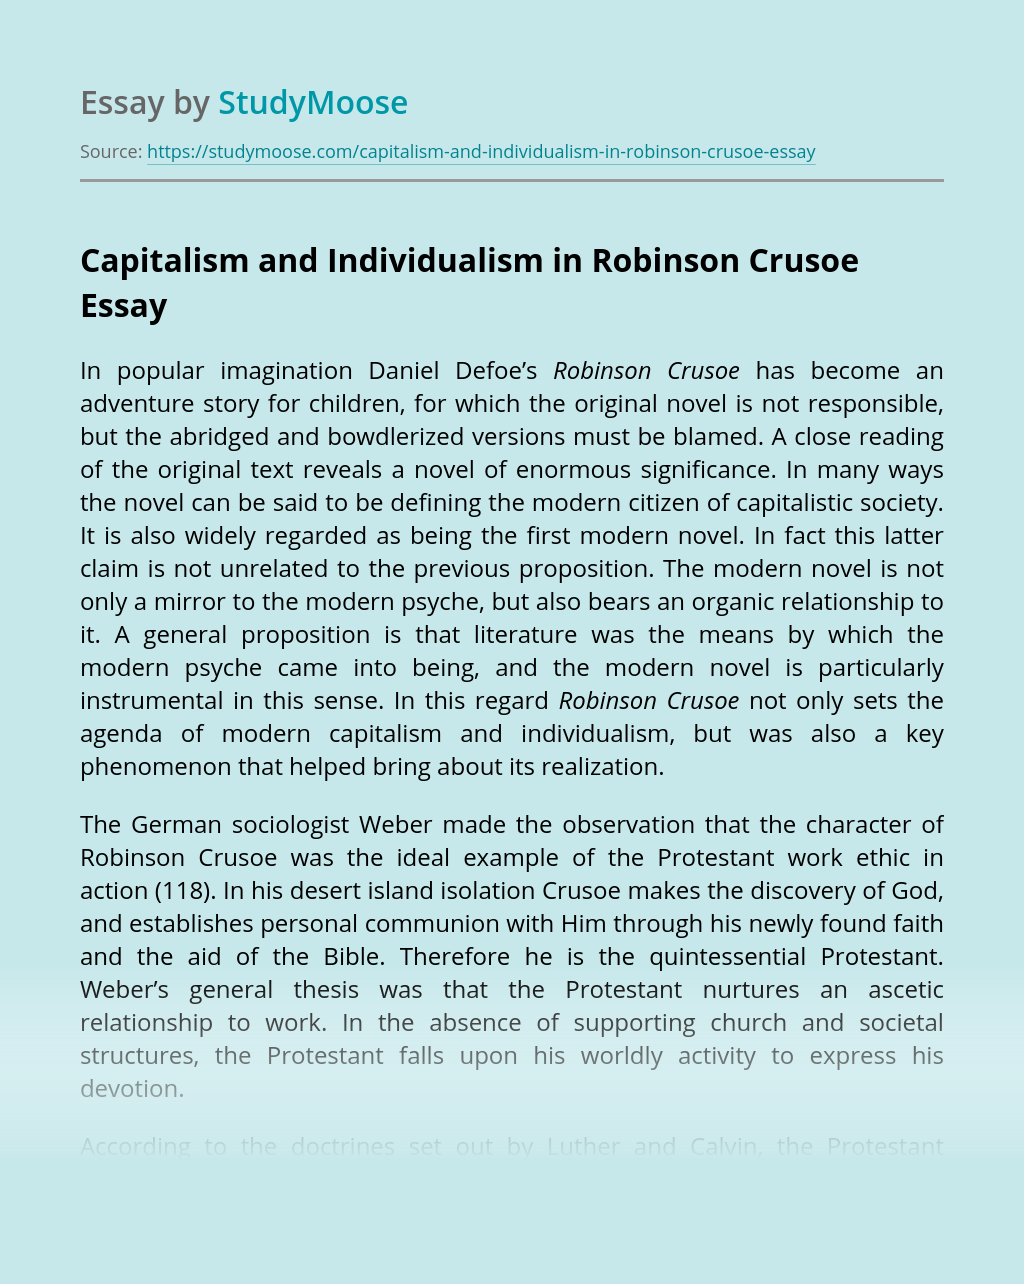 Capitalism and Individualism in Robinson Crusoe